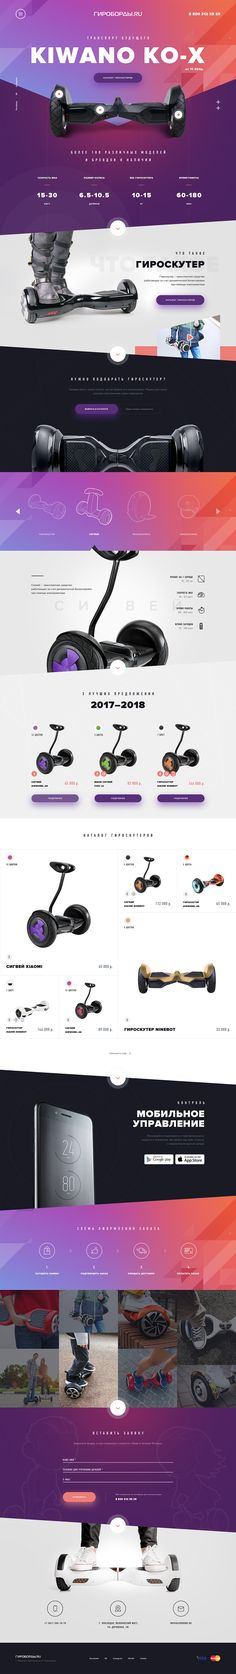 Hoverboard on Behance http://ecommerce.jrstudioweb.com/